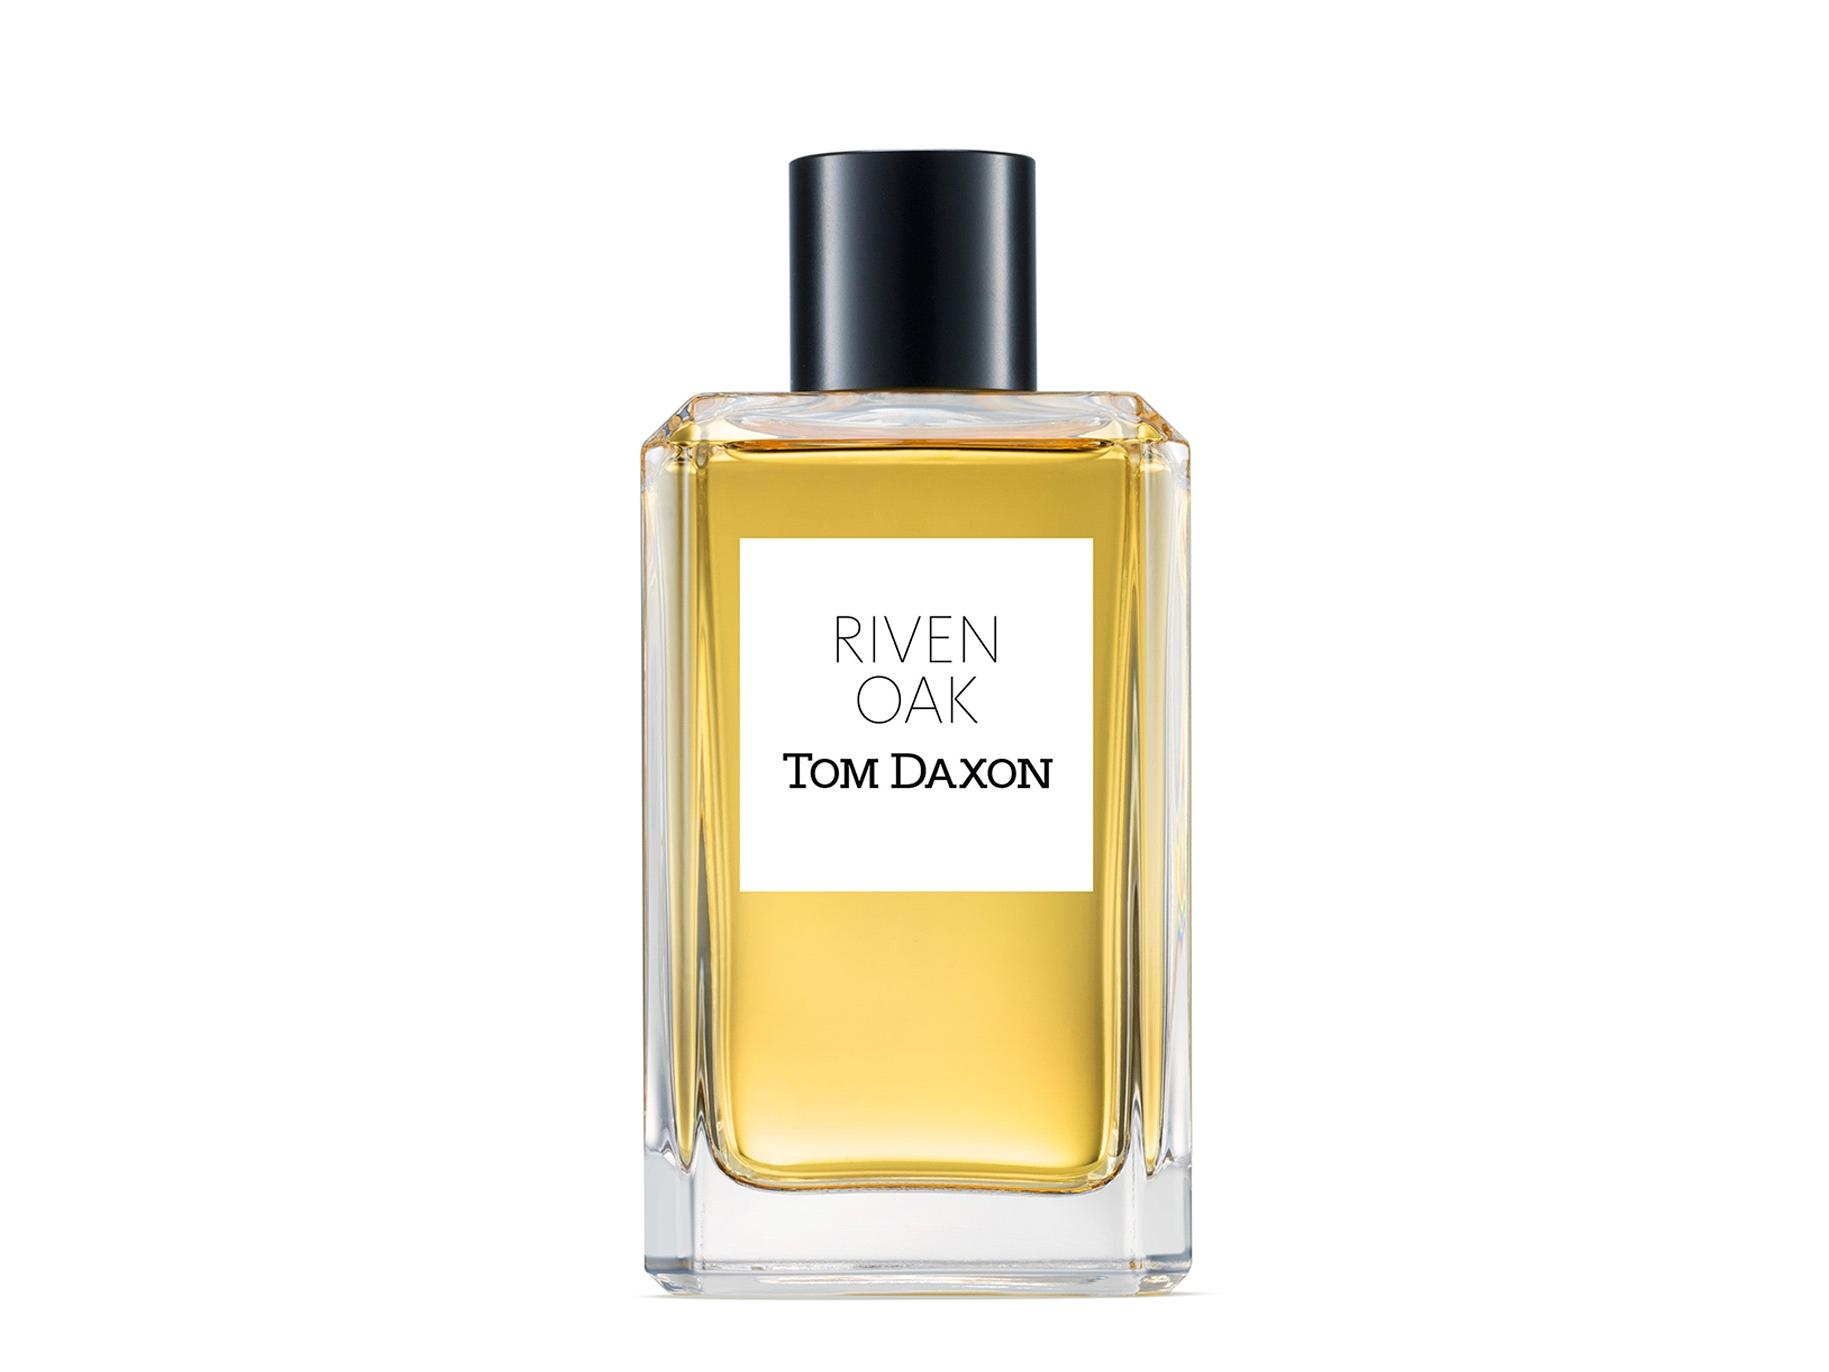 tom daxon riven oak